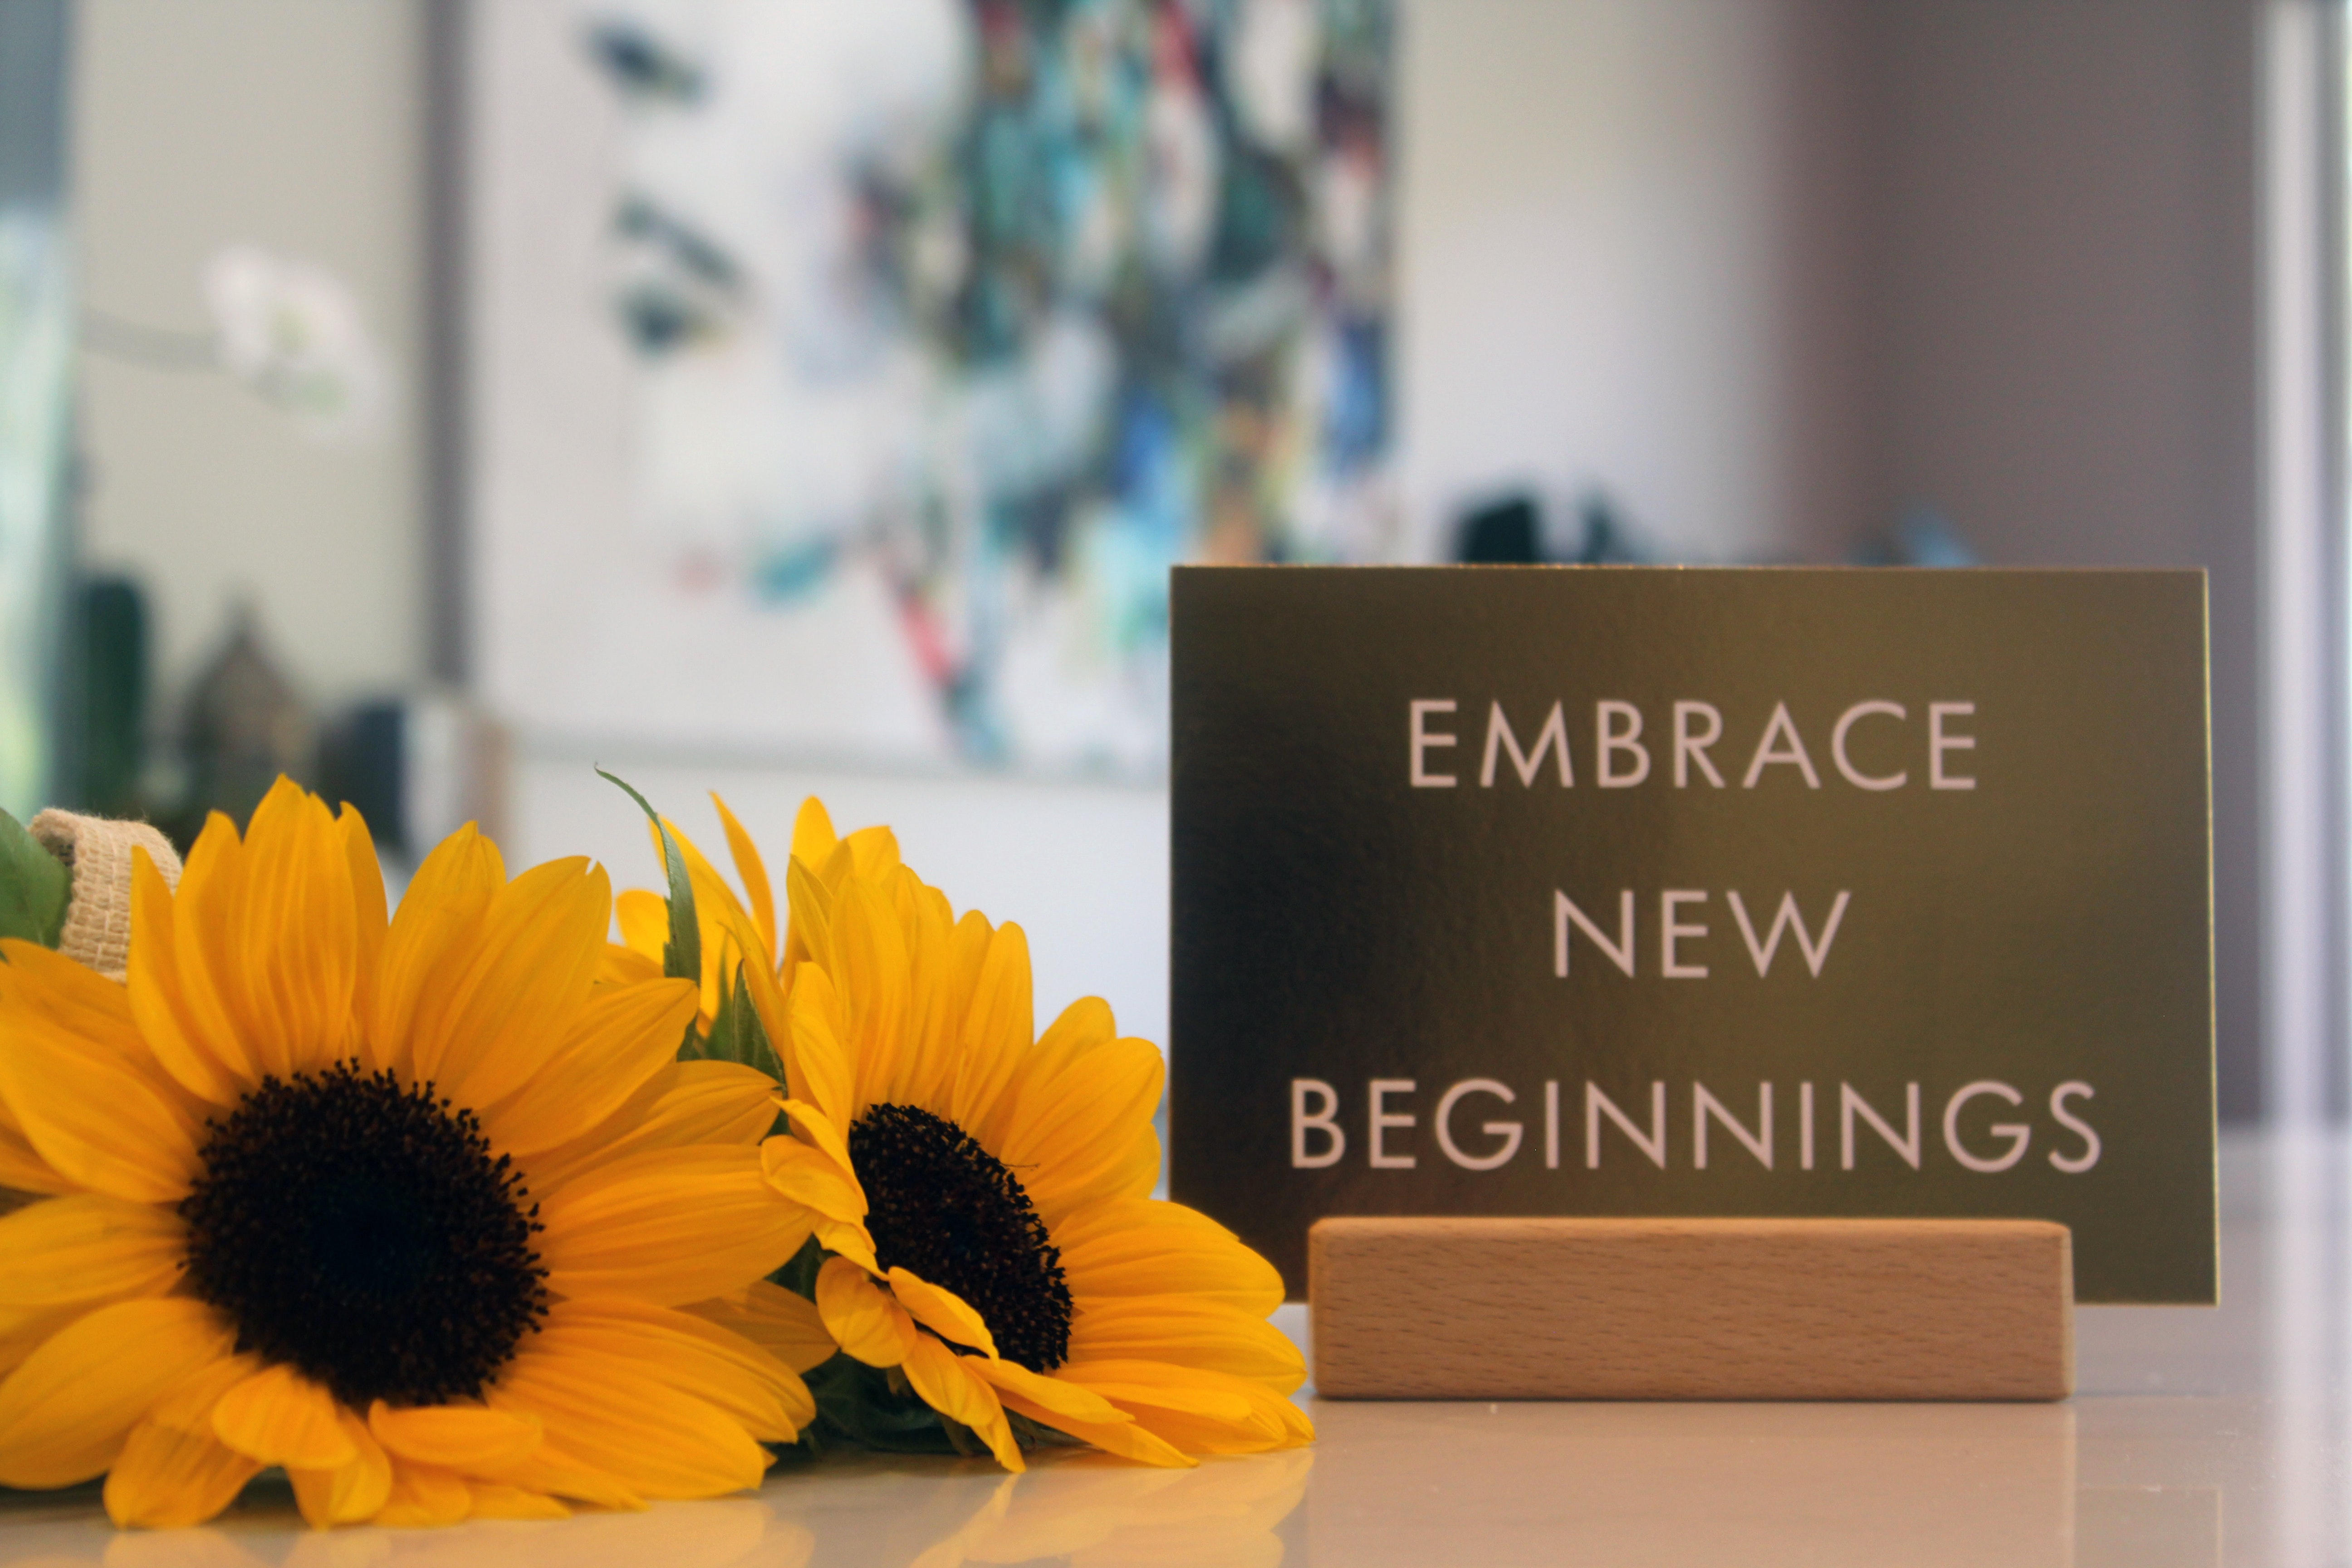 Embrace new beginnings and sunflower